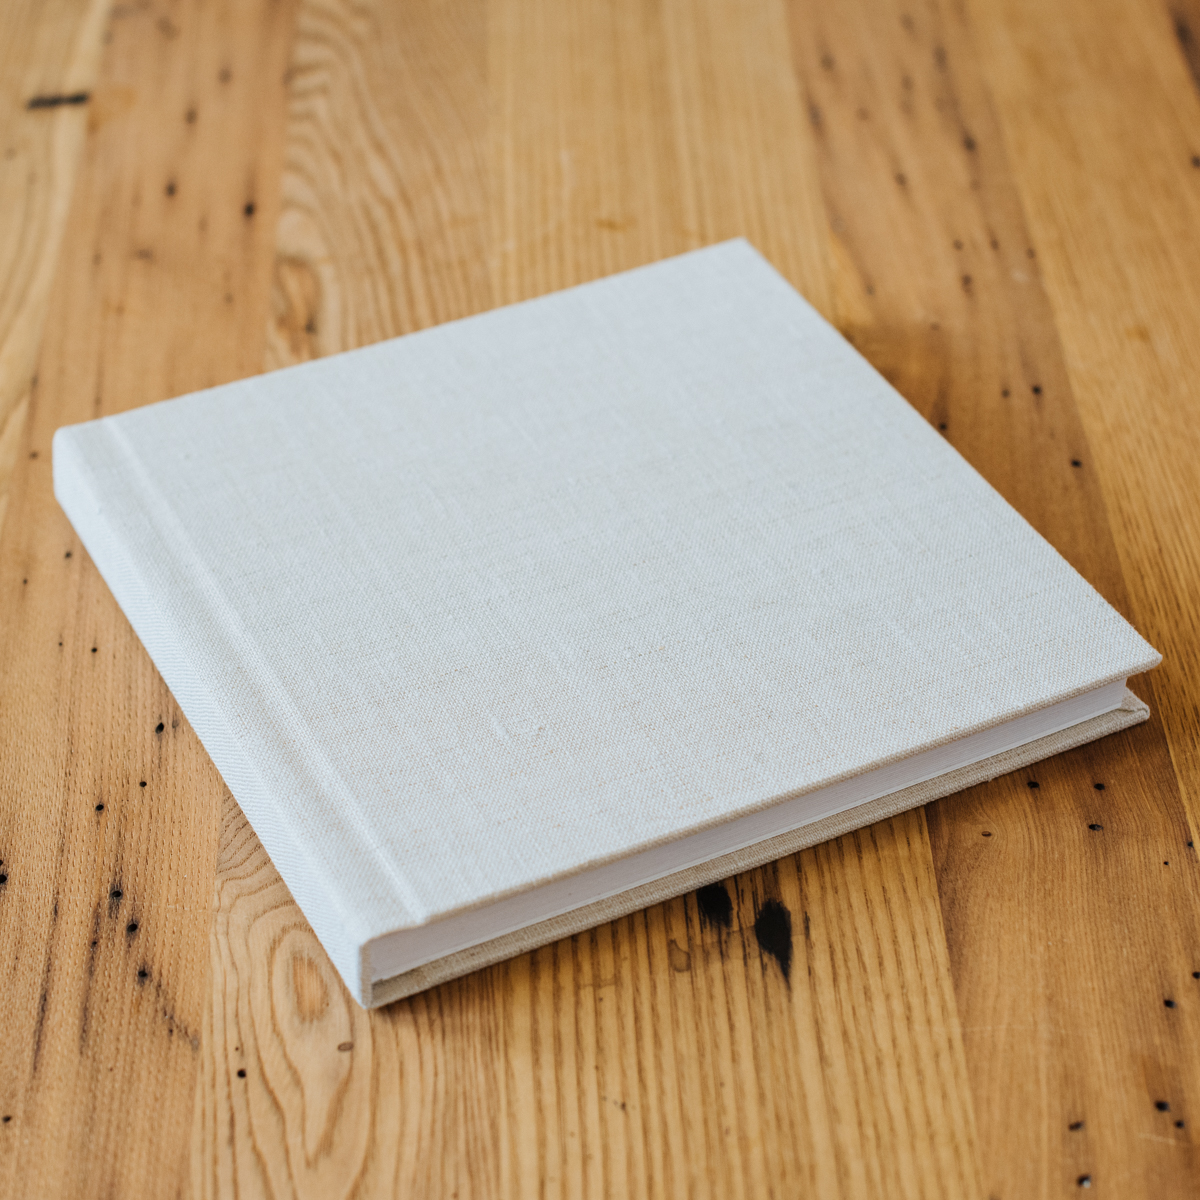 Signature Album with Linen Cover